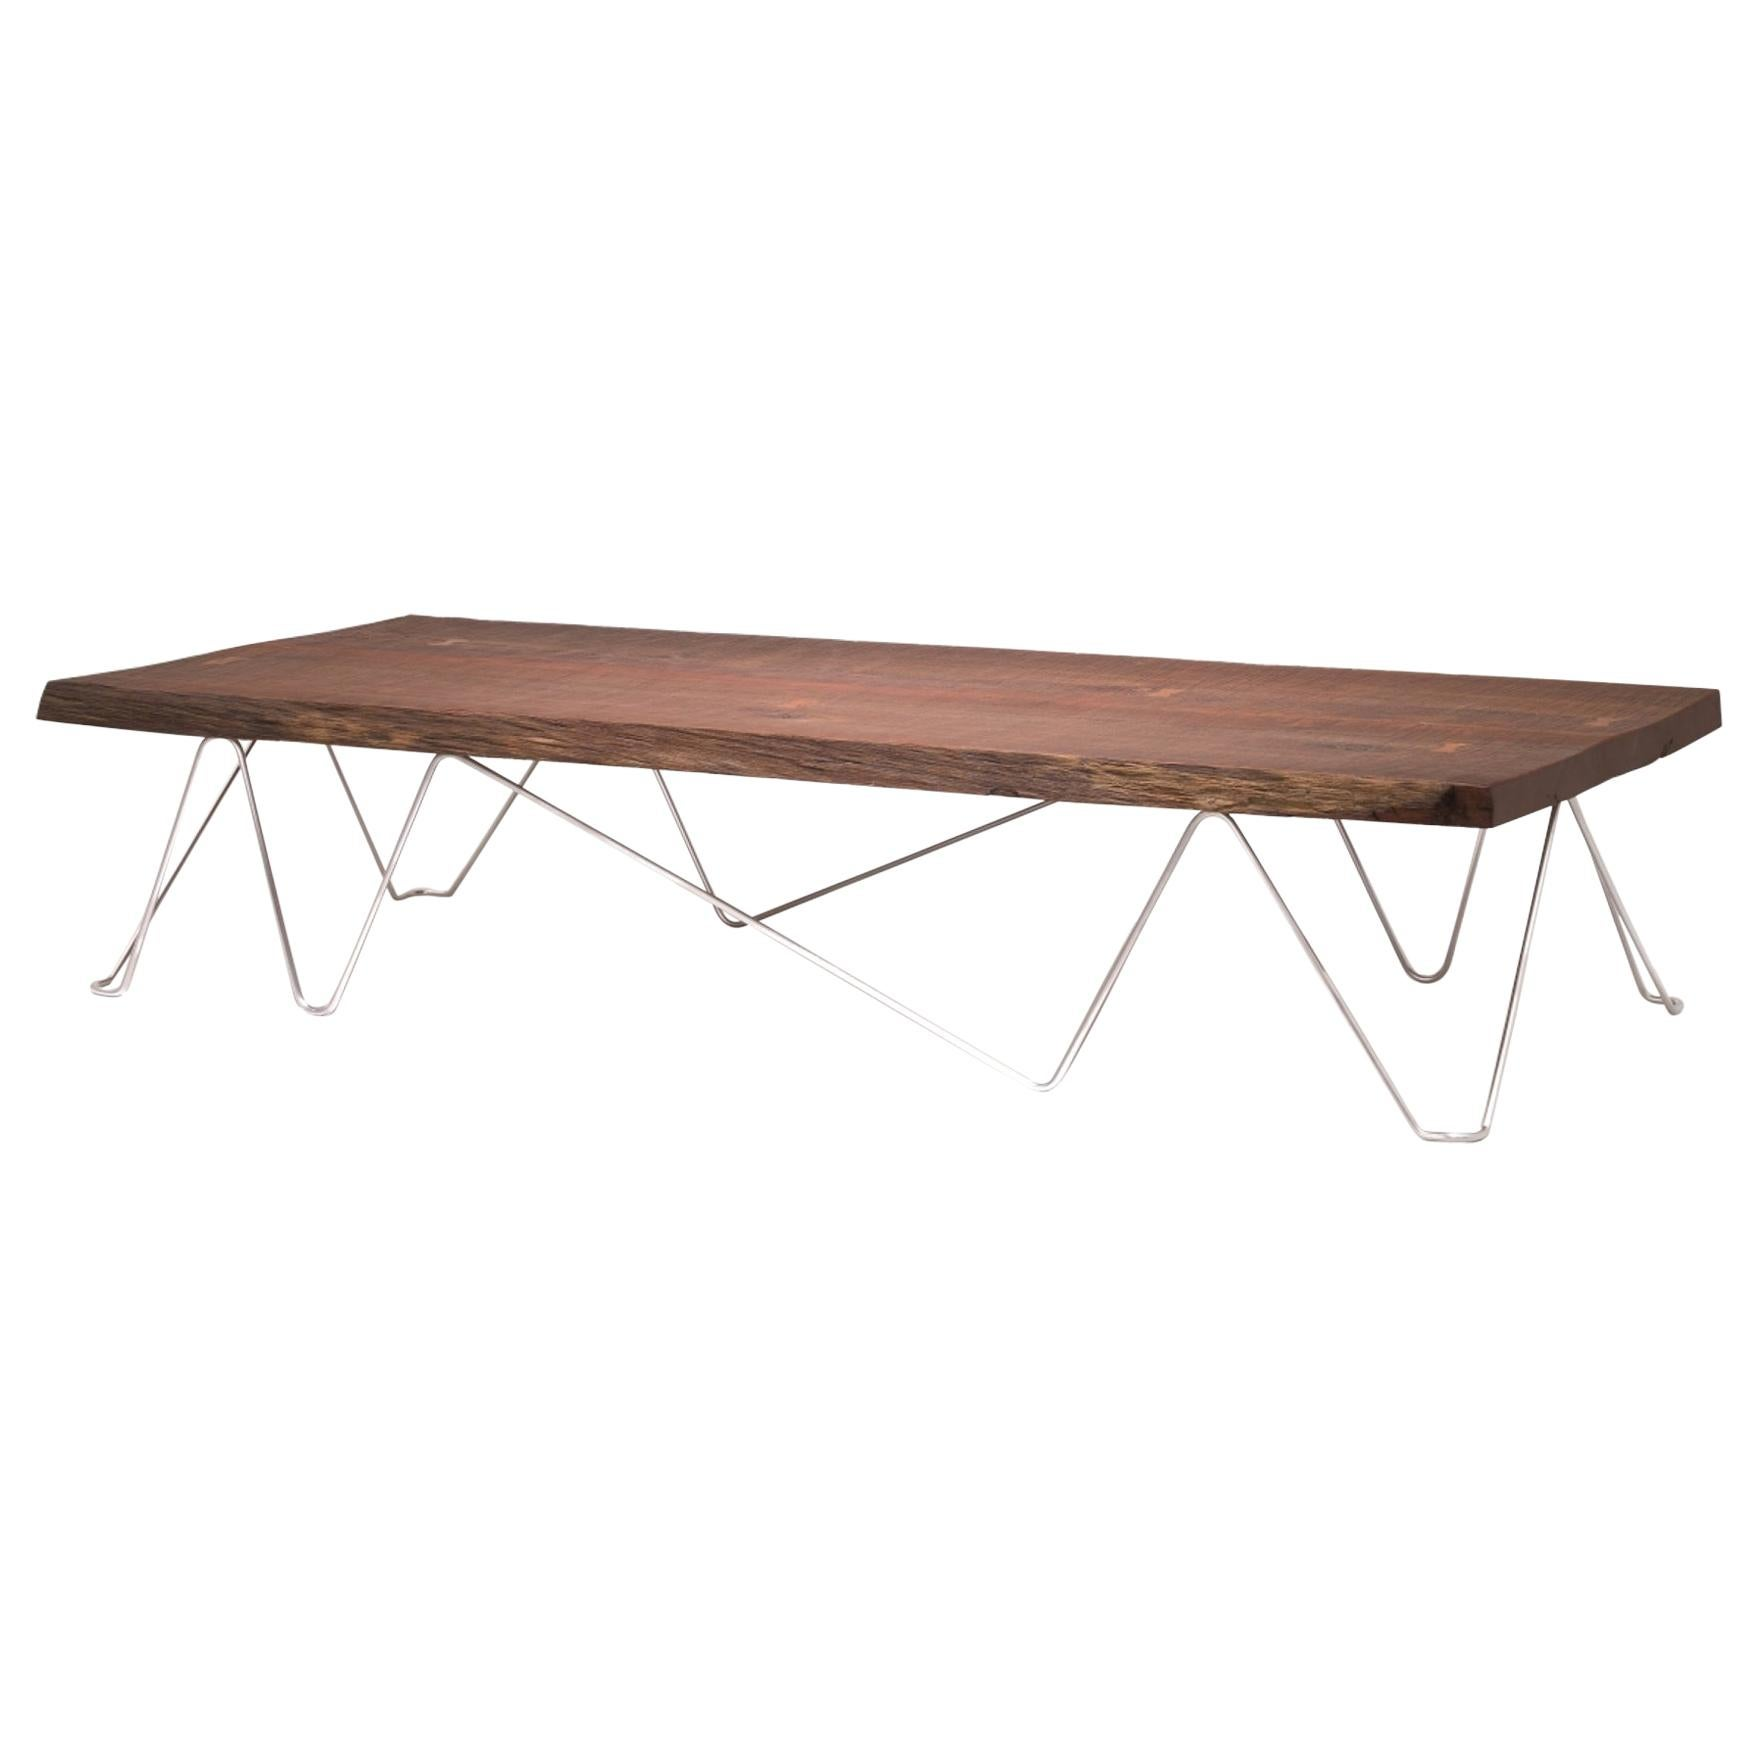 Modern Organic Live Edge Slab Reflect Coffee Table made from Ancient Wood